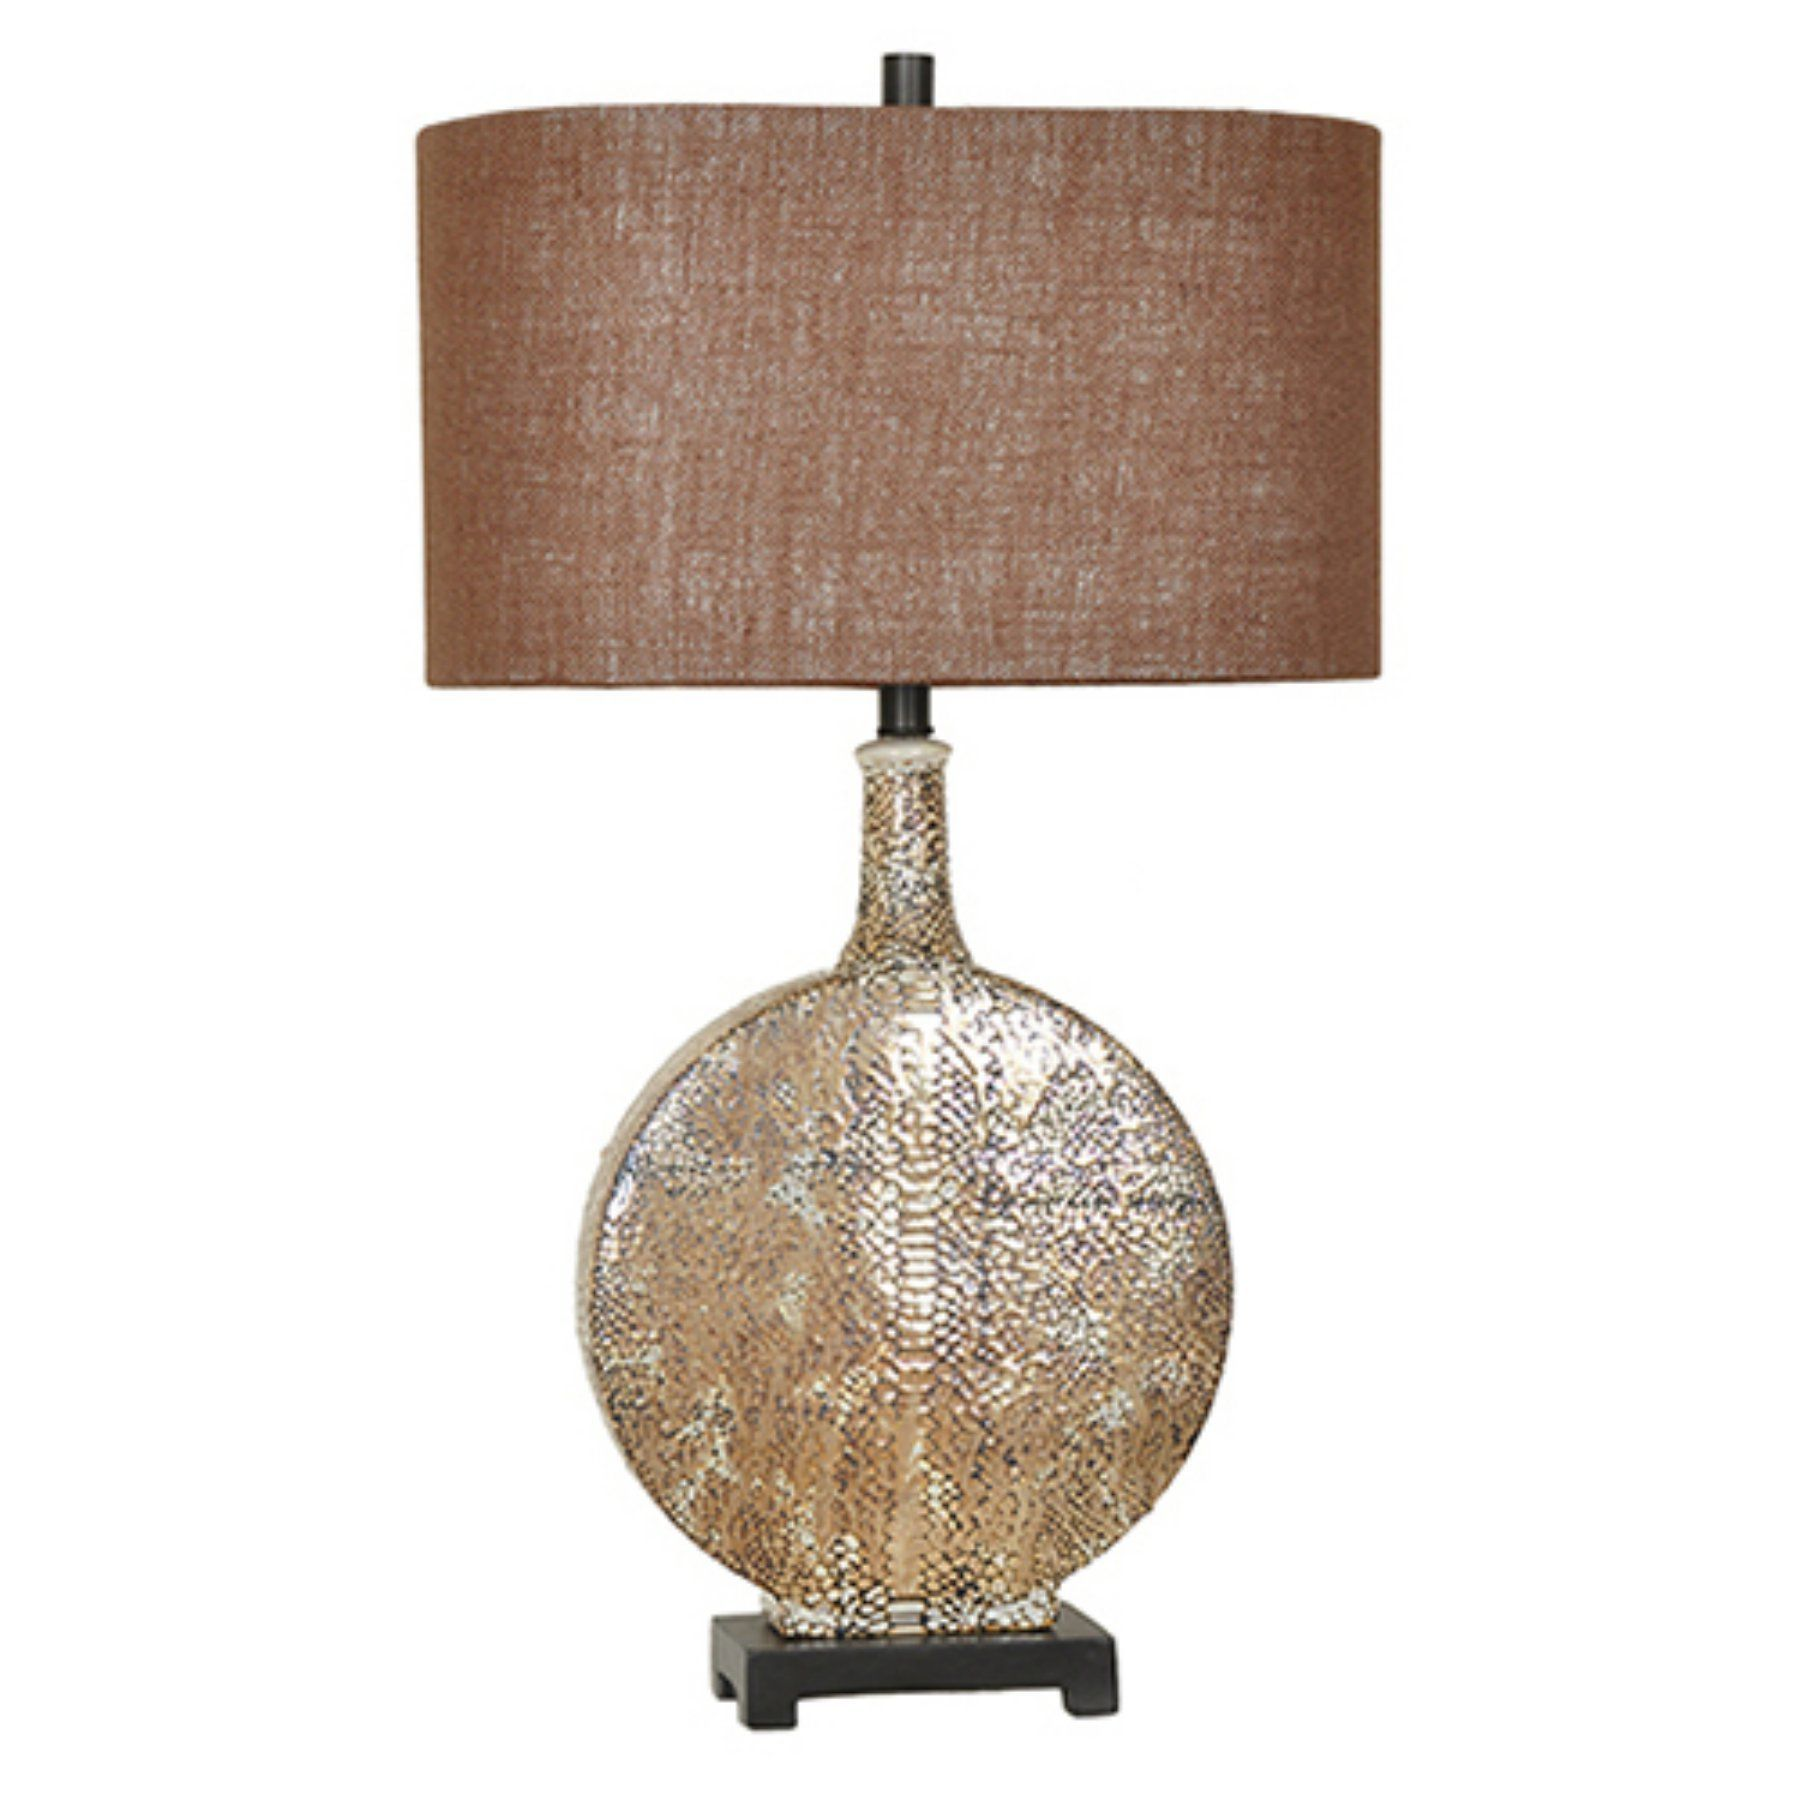 Crestview collection norris table lamp cvap1902 products crestview collection norris table lamp cvap1902 geotapseo Gallery